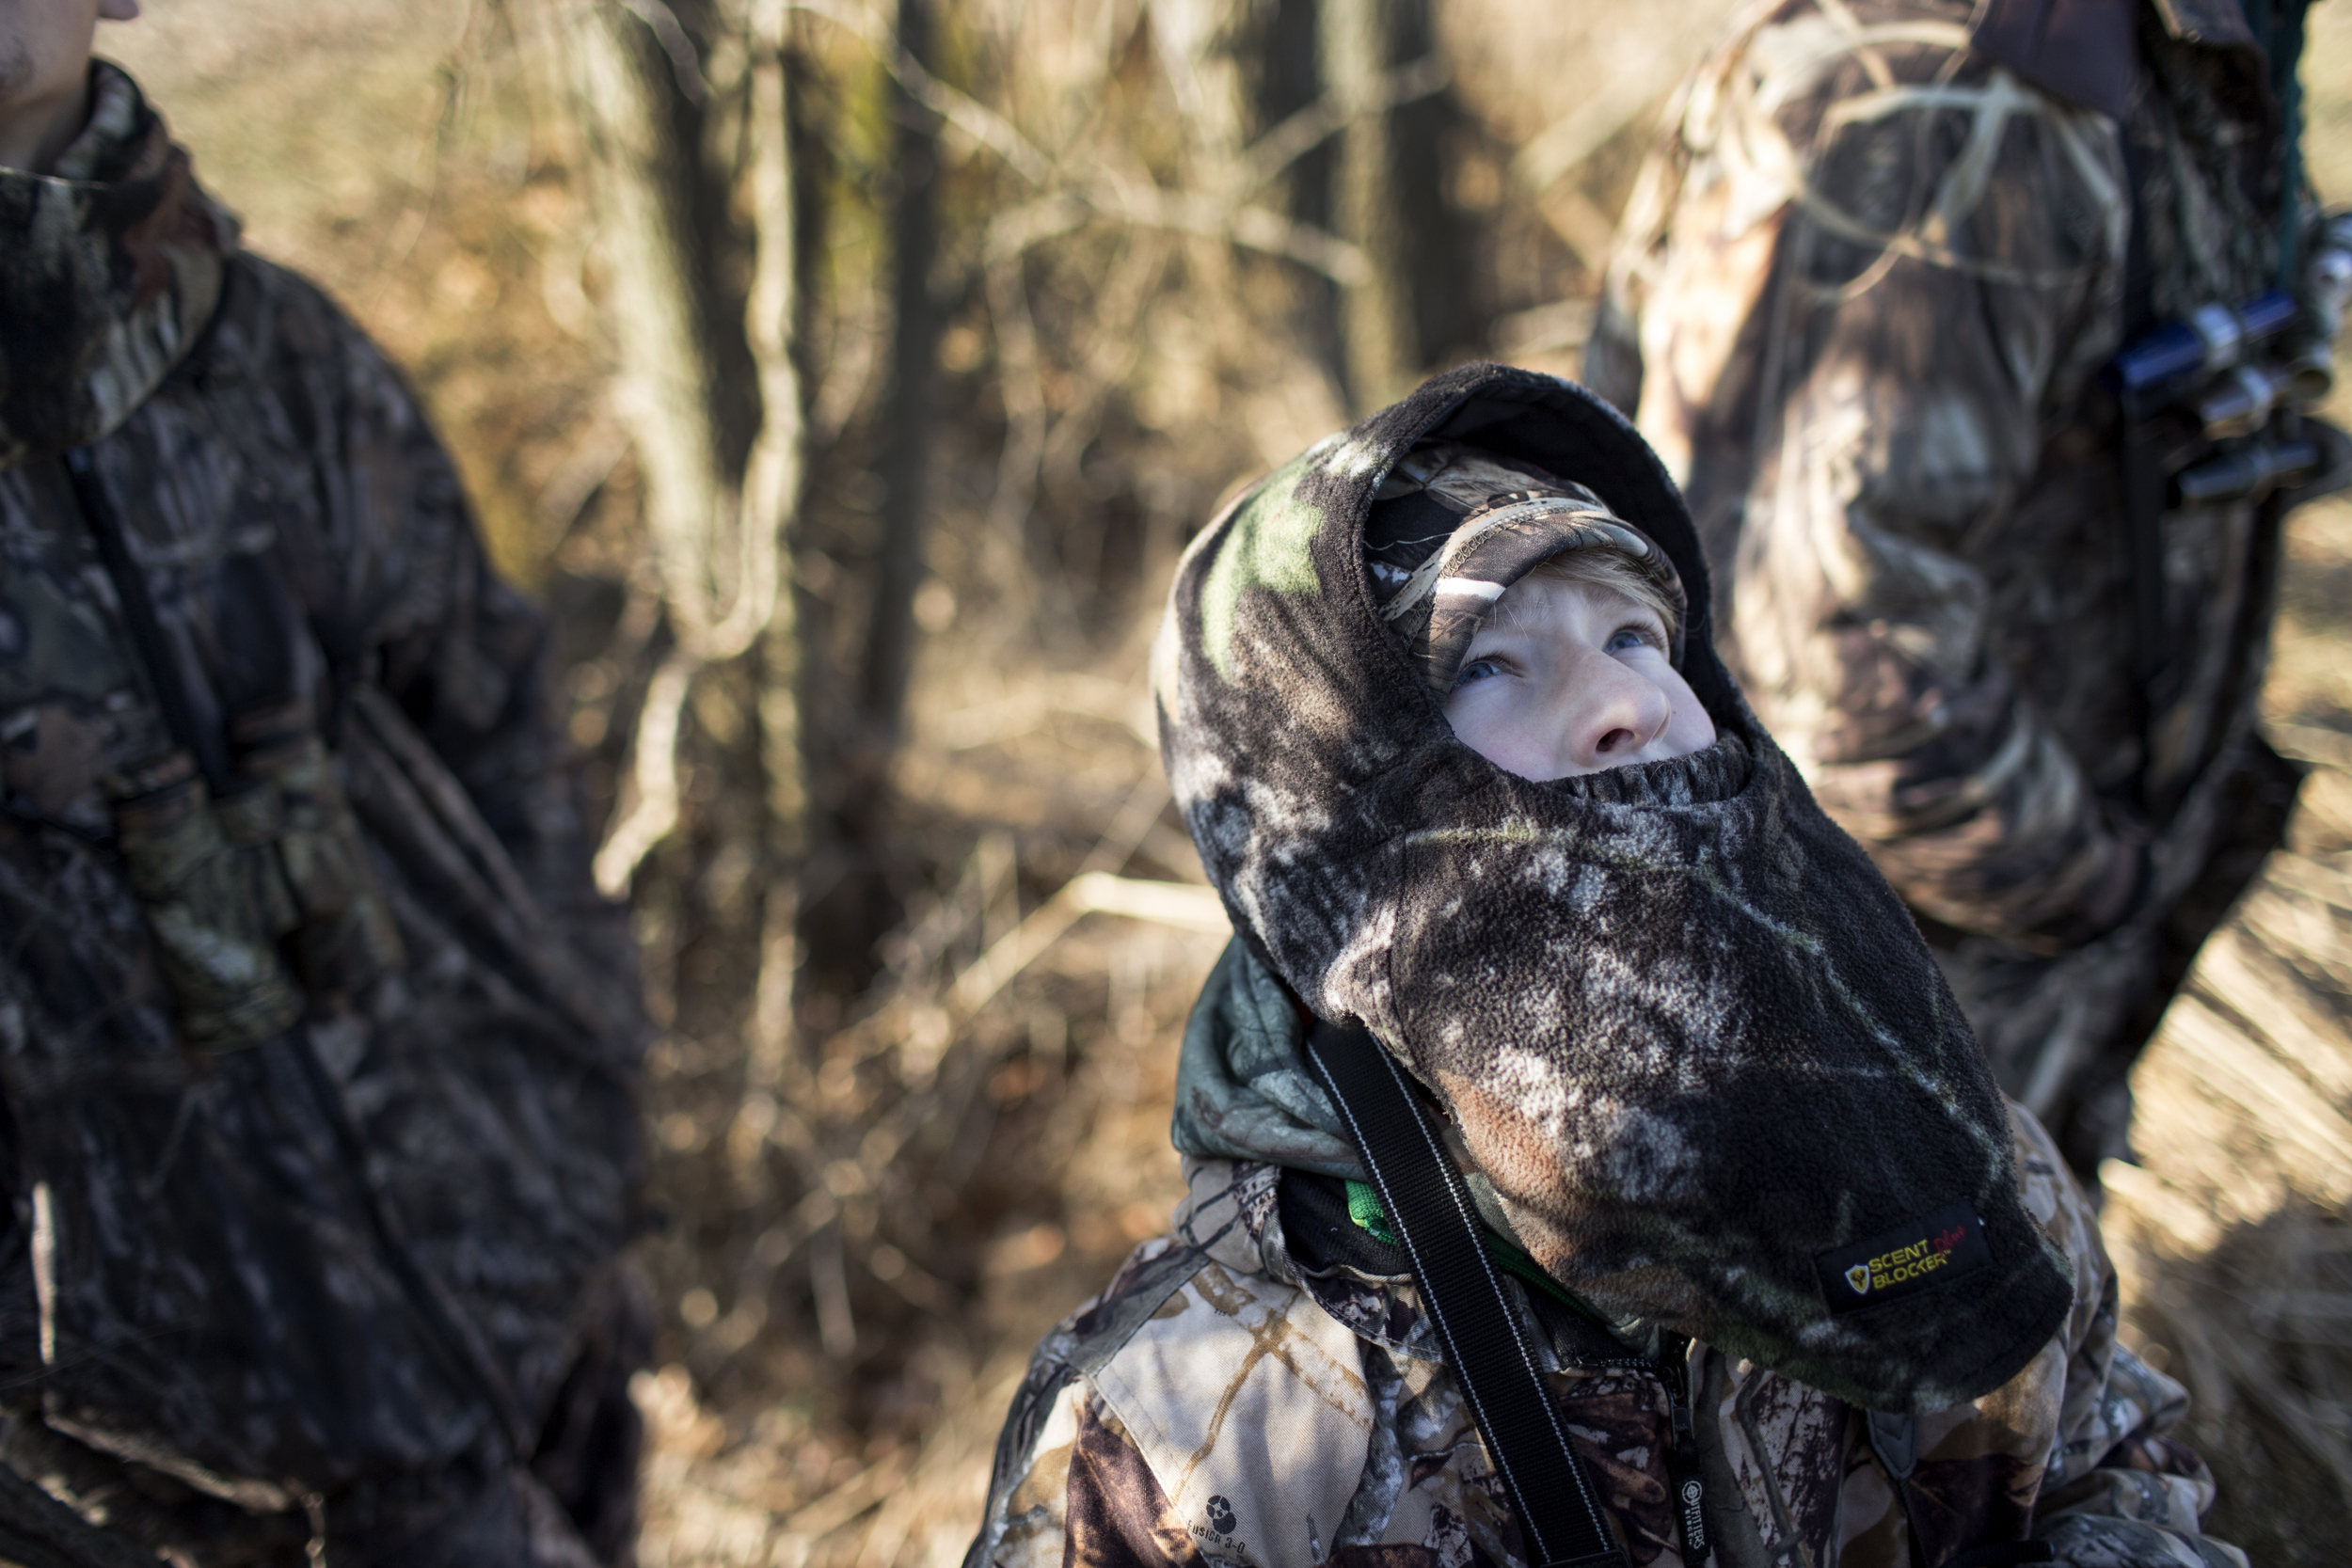 Cruz gazes up at a flock of geese flying overhead at the end of morning goose hunt outside Easton, Maryland.